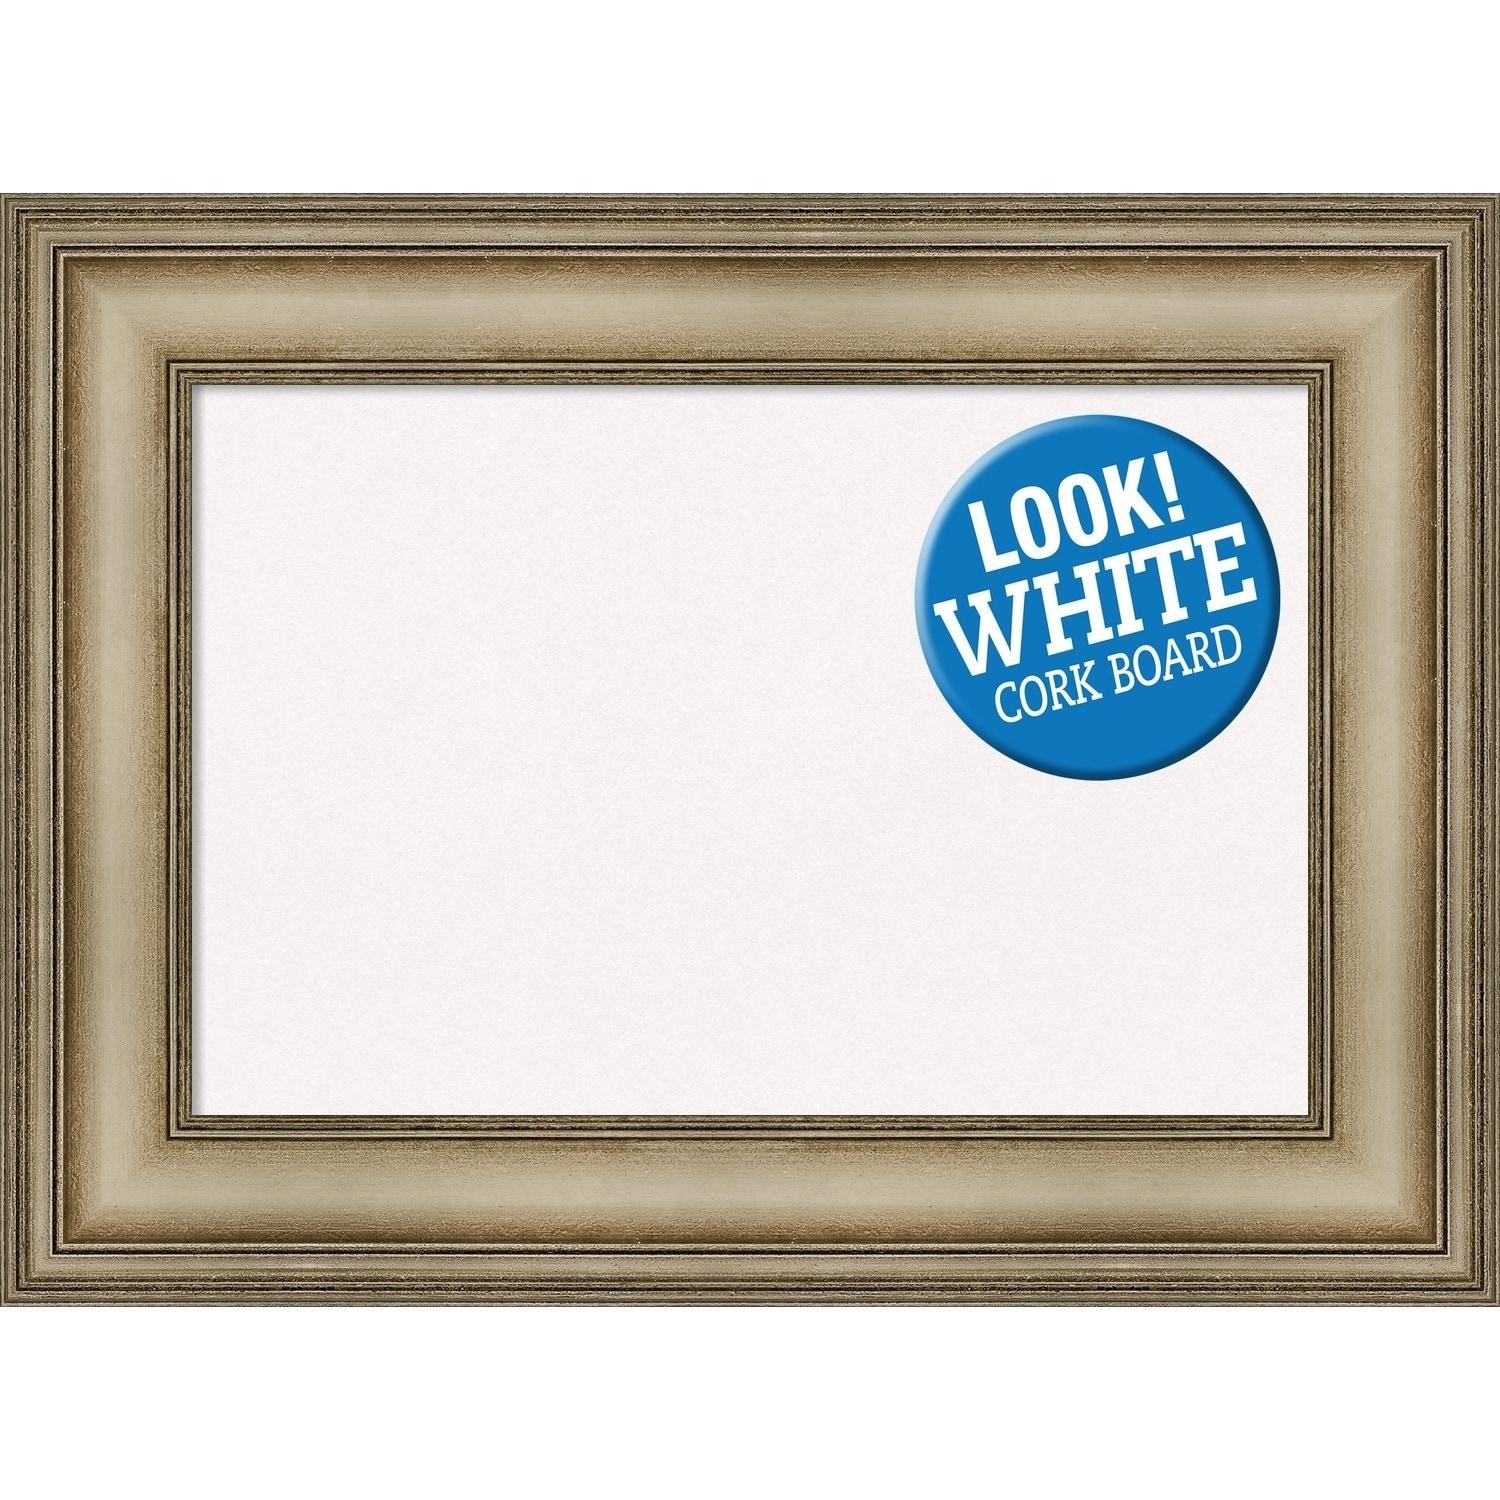 Shop Framed White Cork Board, Mezzanine Antique Silver Narrow - Free ...